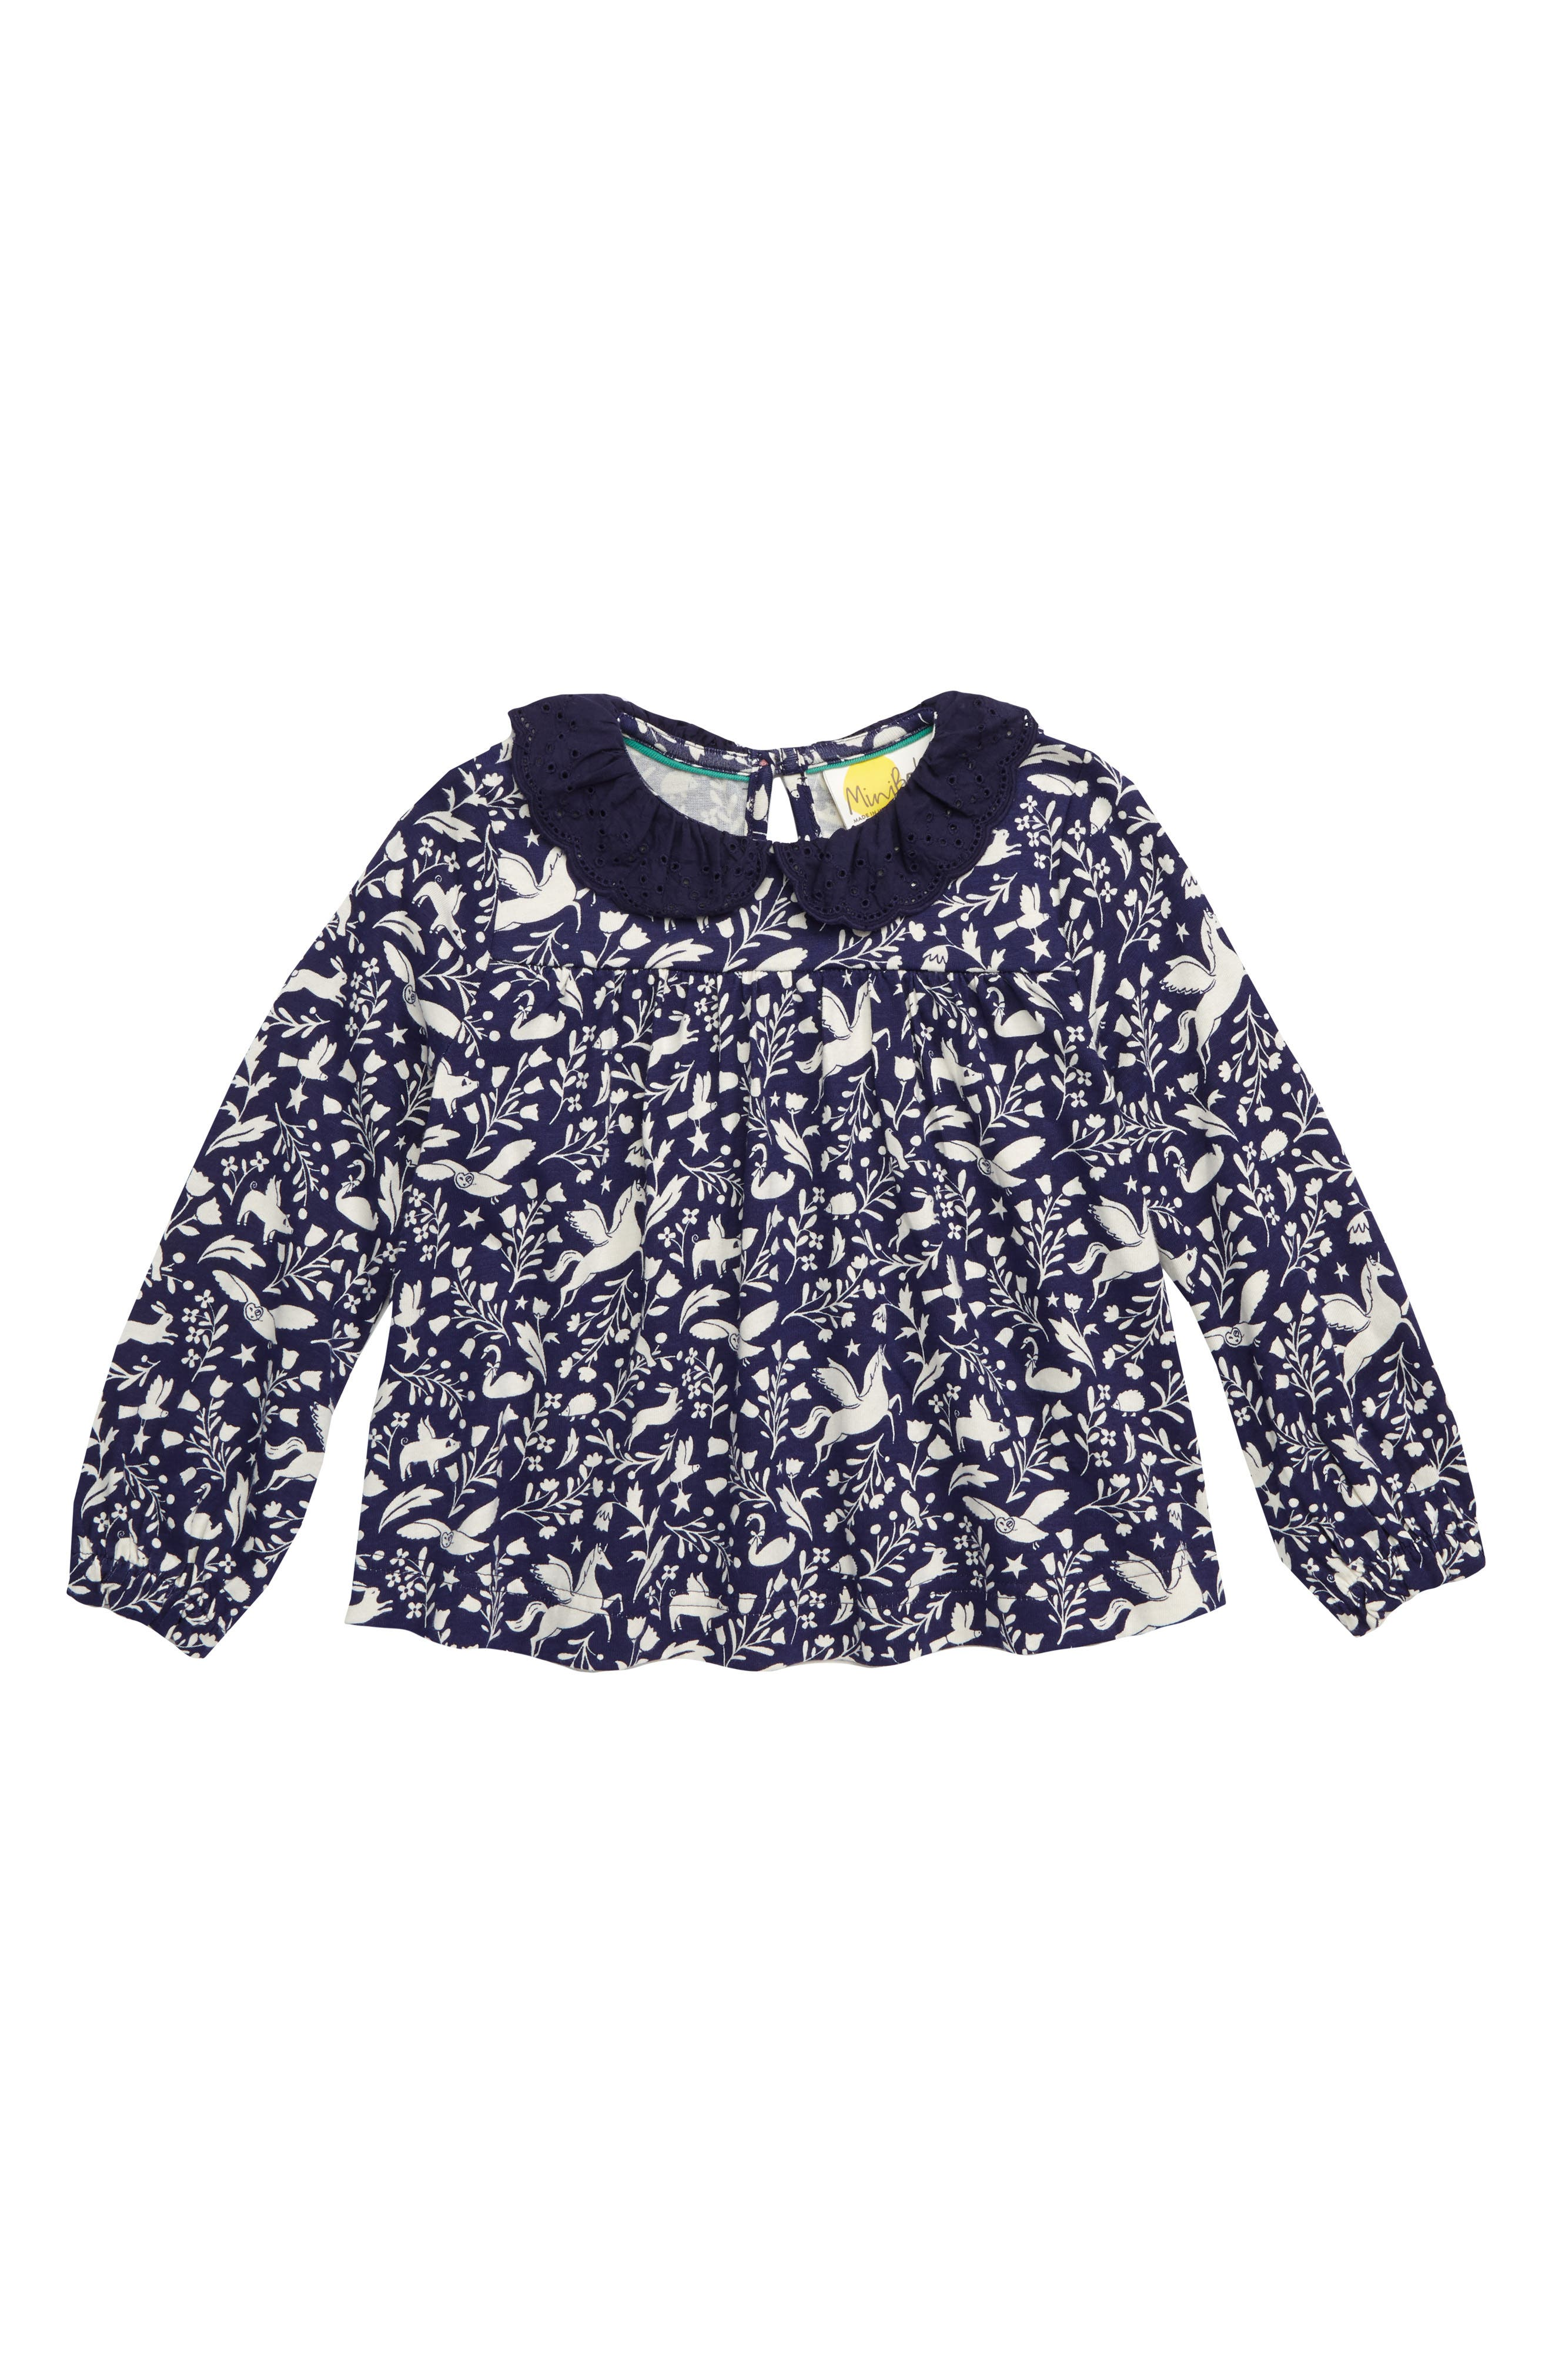 Broderie Collar Top,                         Main,                         color, 414